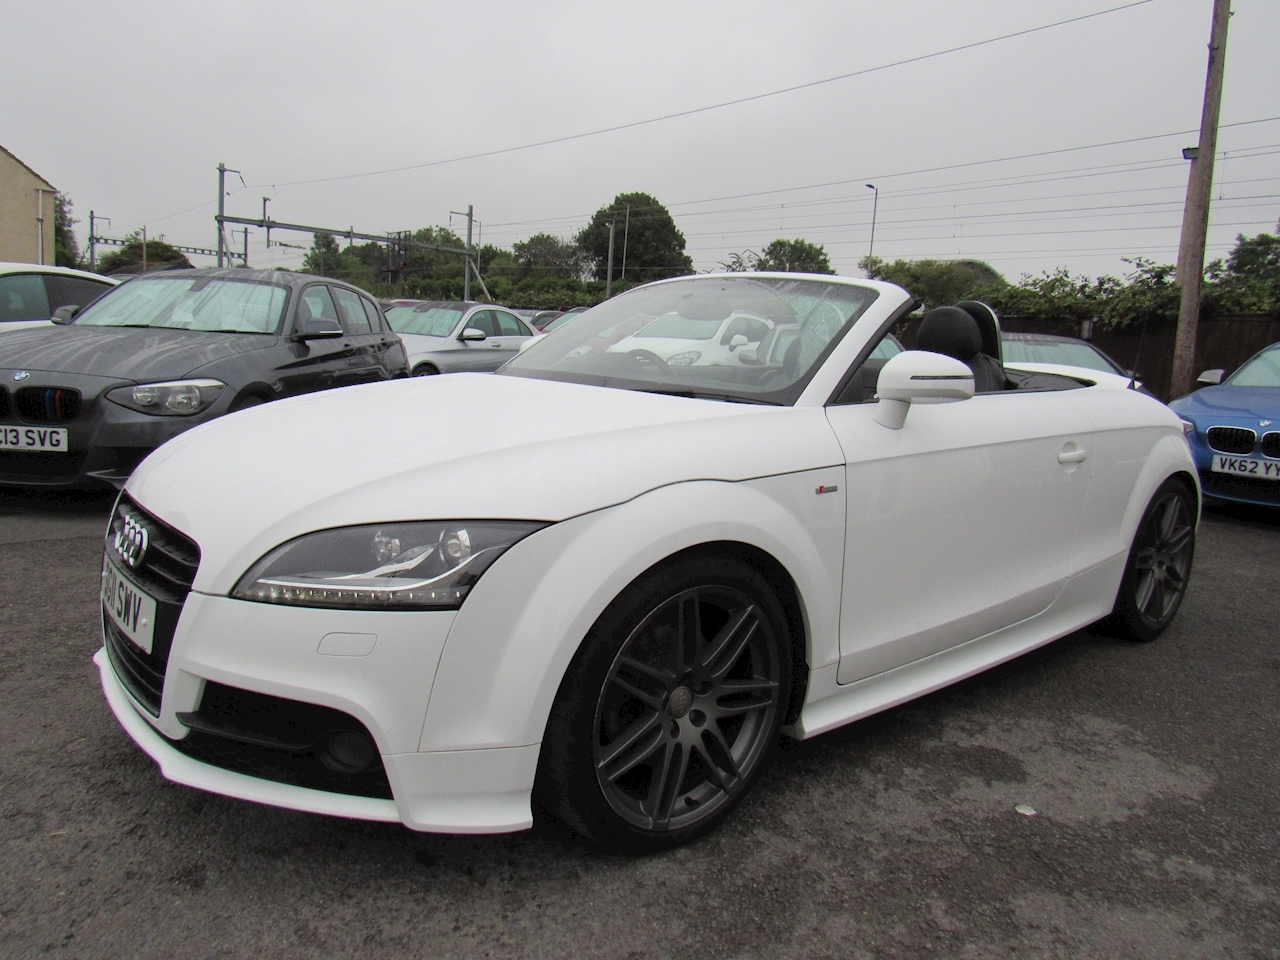 Audi TT Black Edition Roadster 2.0 Manual Petrol